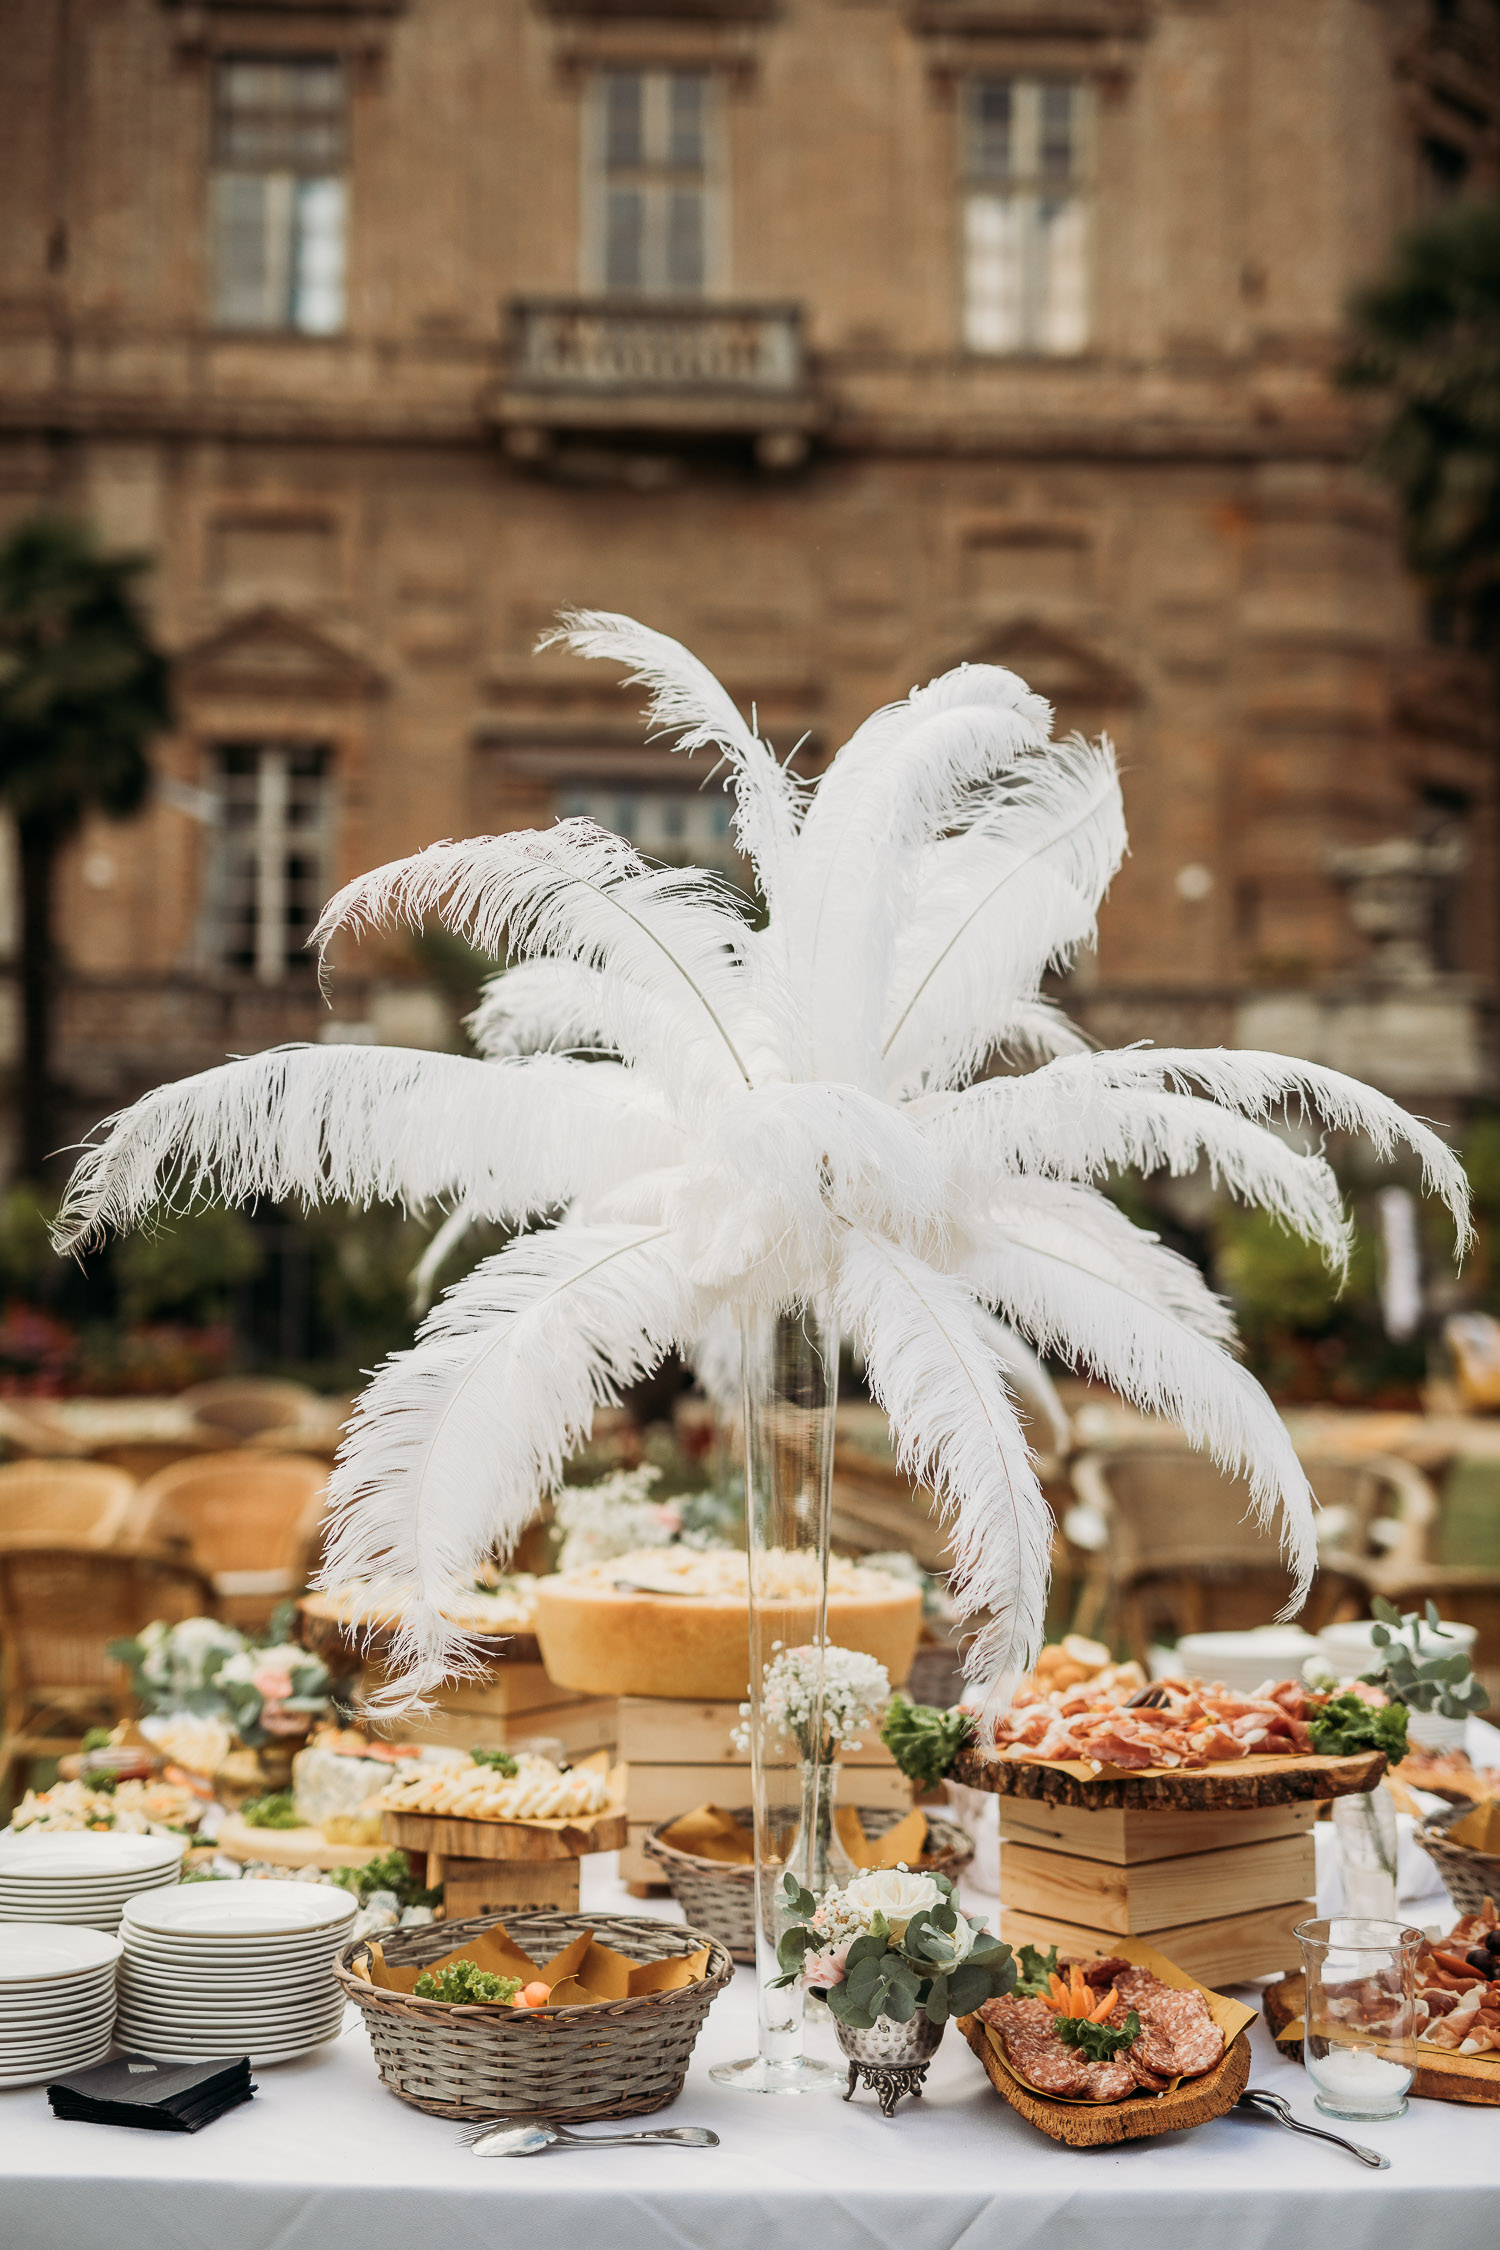 Great Gatsby wedding decor with plumes